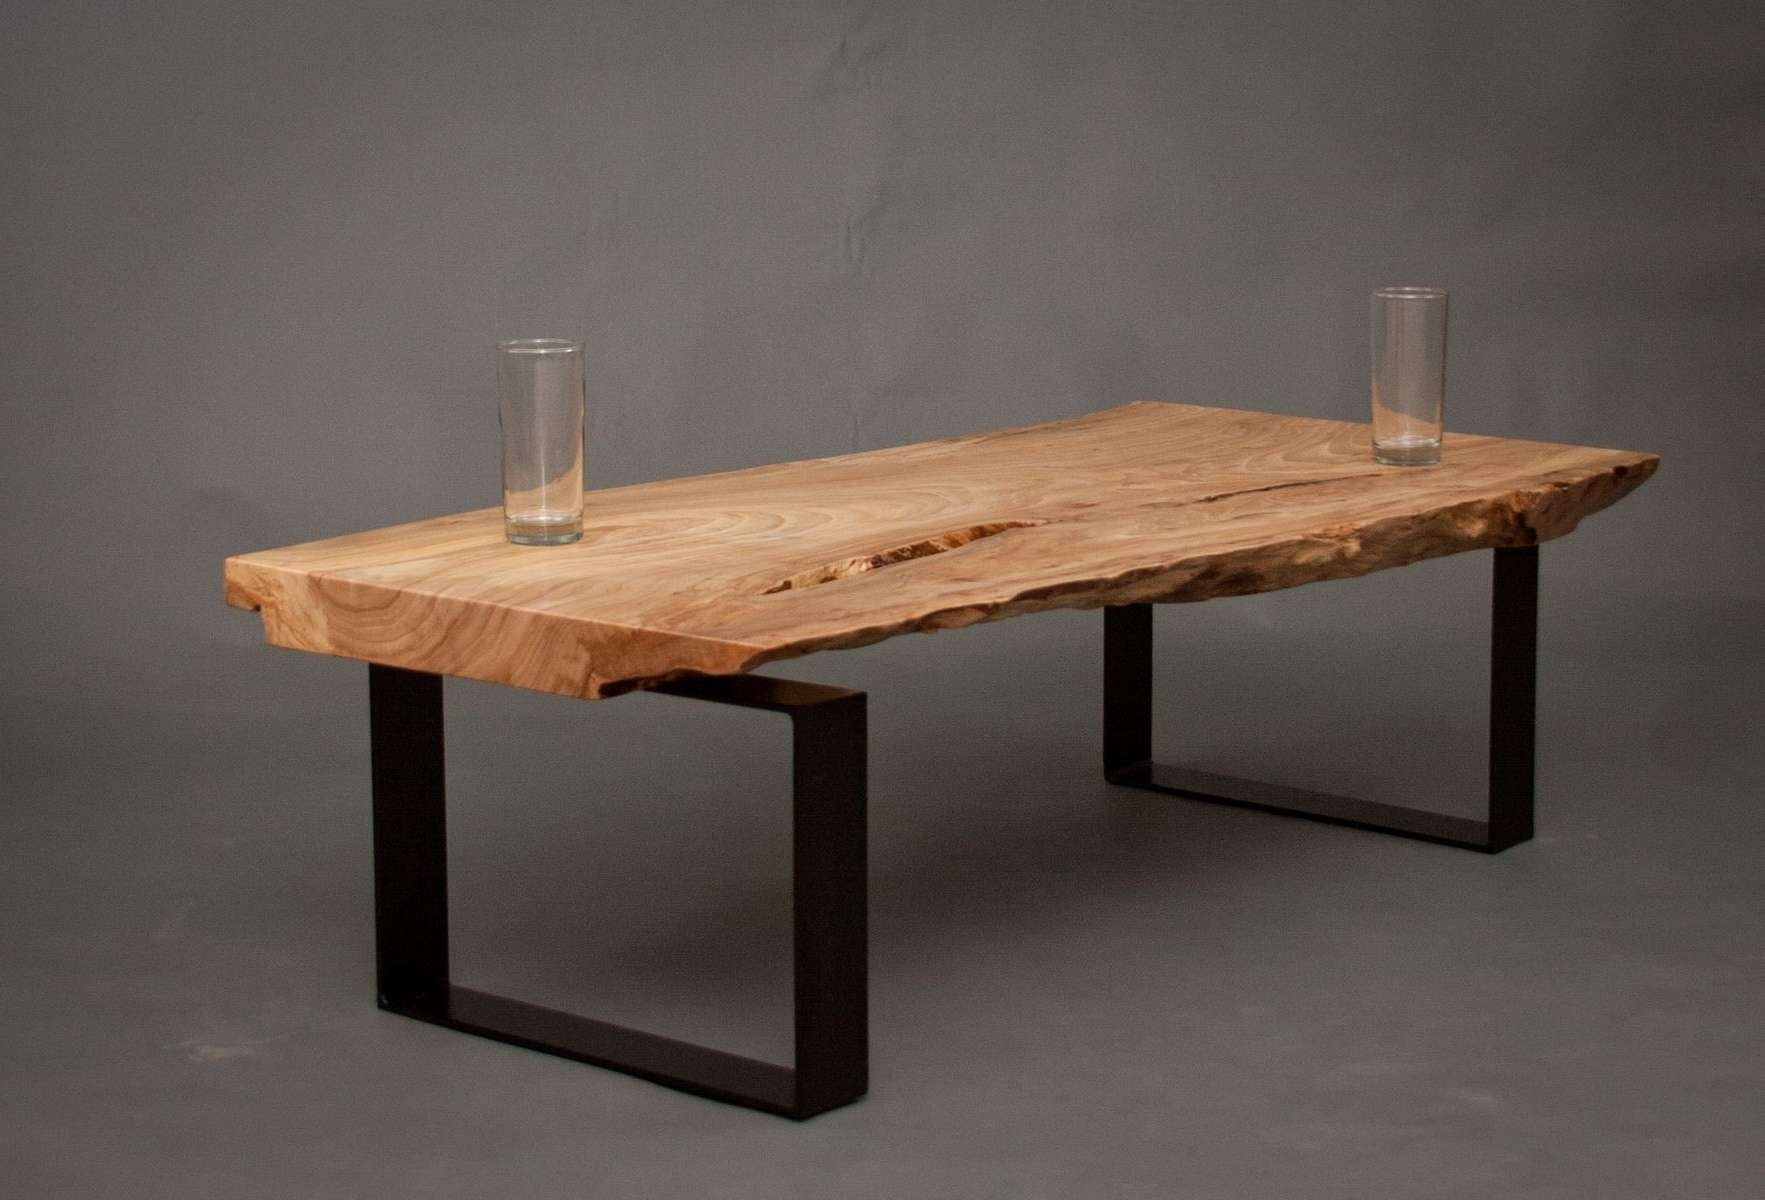 Newest Reclaimed Oak Coffee Tables Intended For Things To Know About Reclaimed Wood Coffee Tables – Chinese (Gallery 2 of 20)